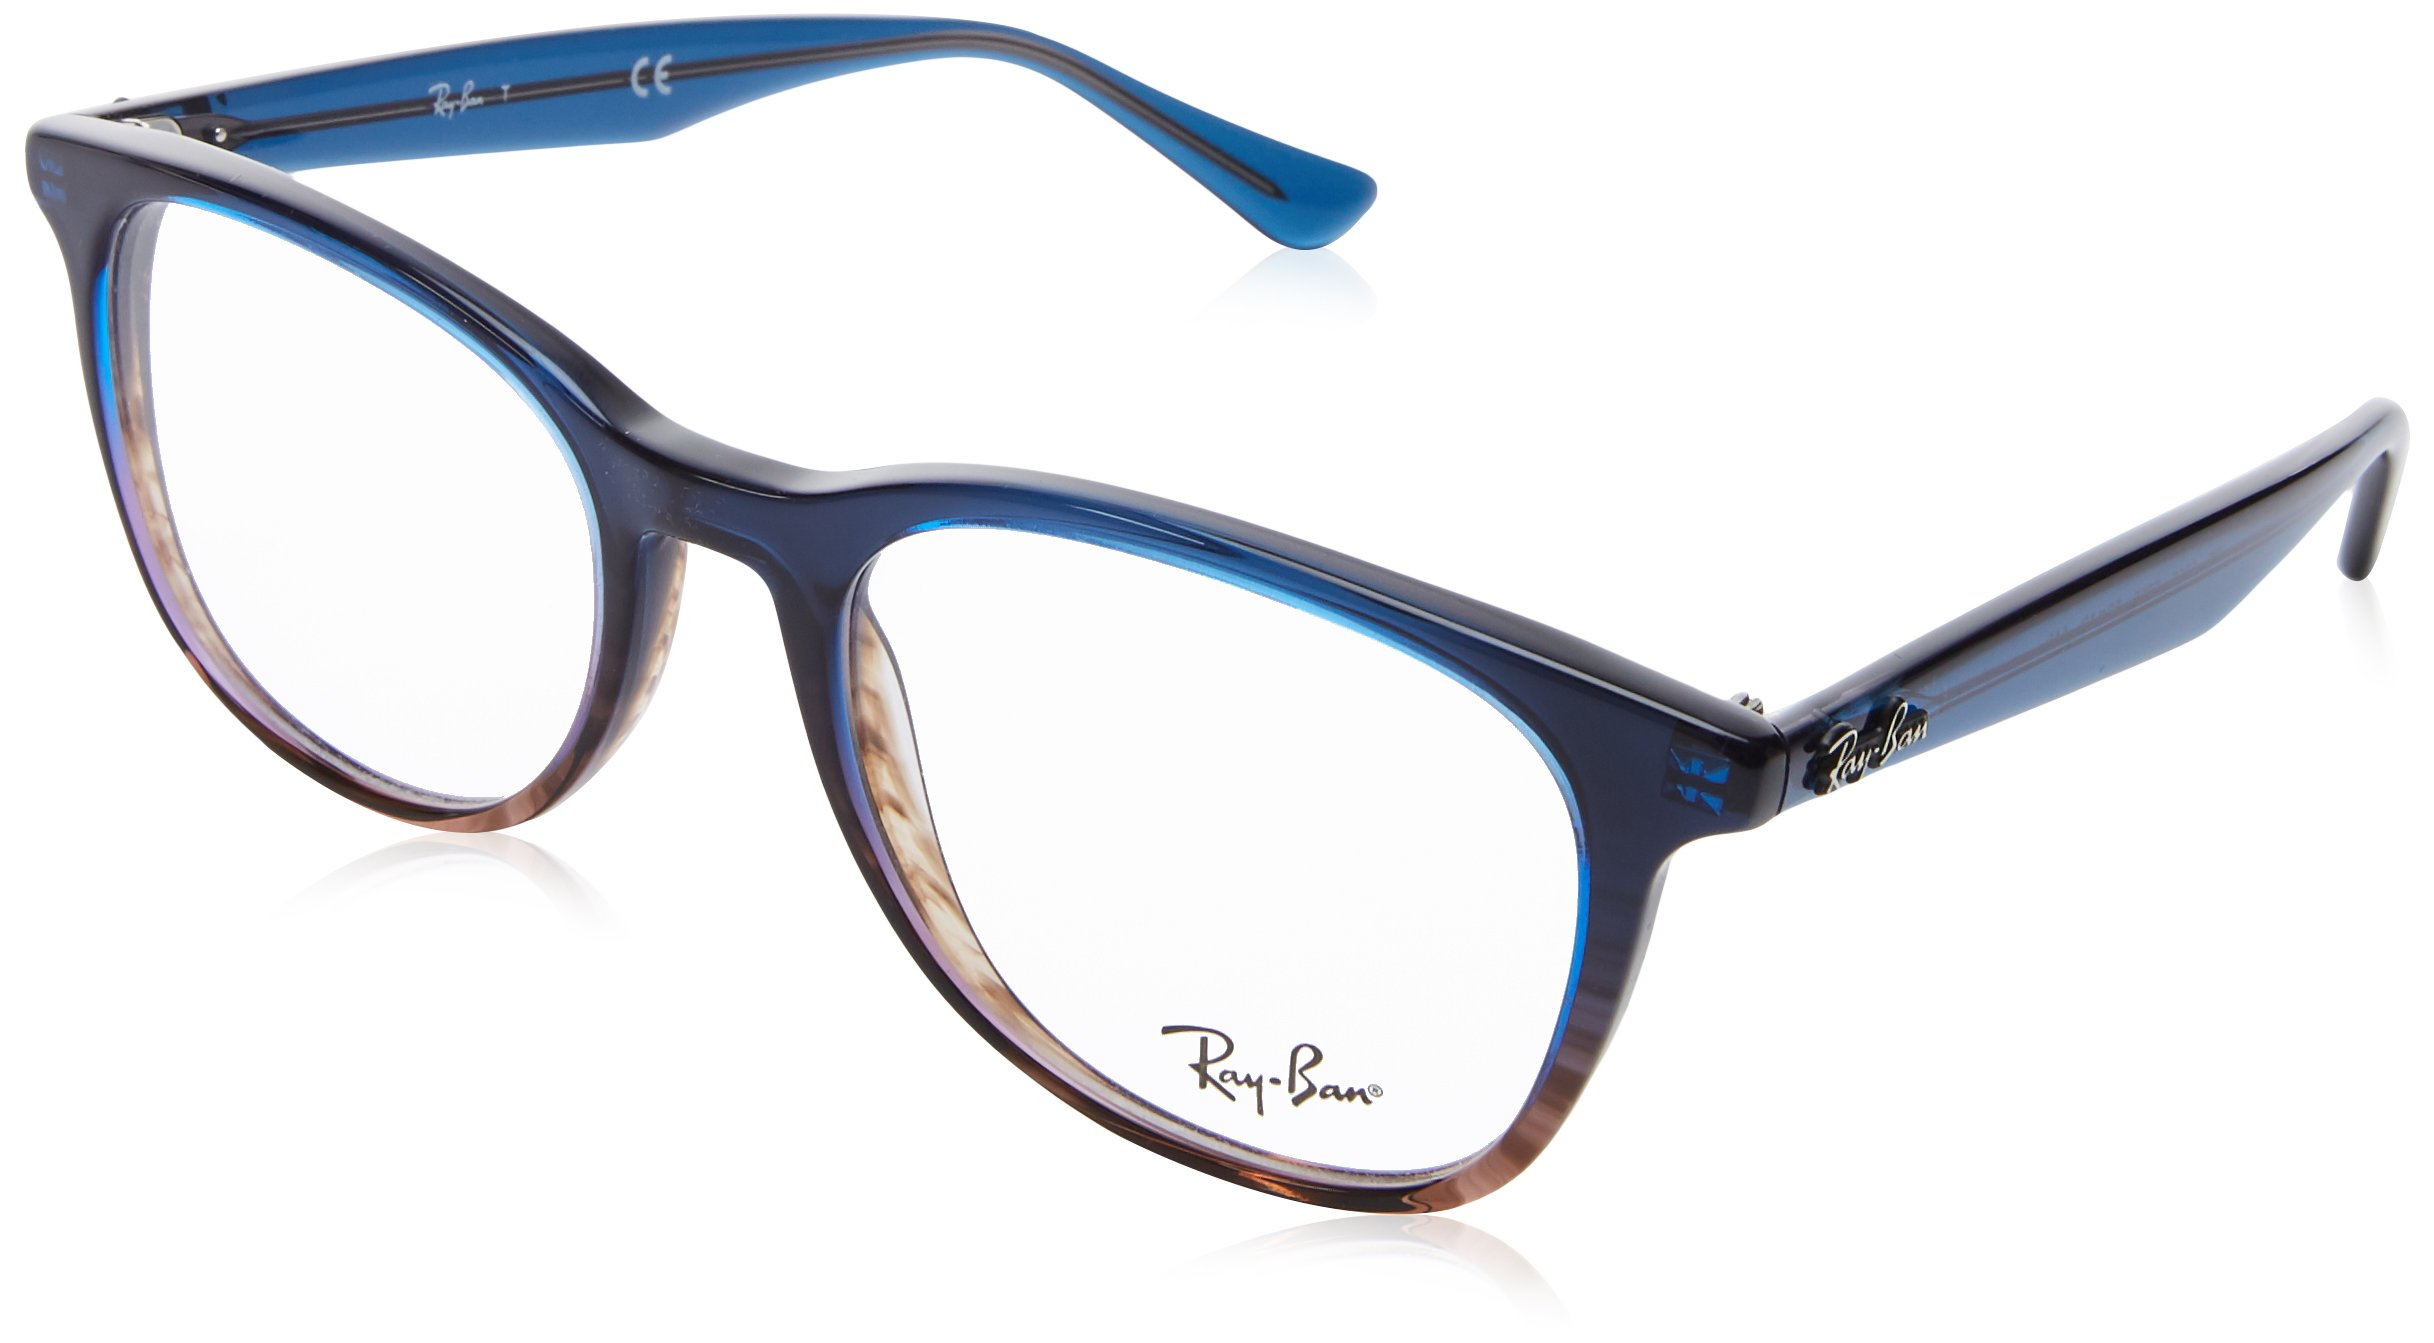 Ray-Ban RX5356 Square Eyeglass Frames, Blue Grey  /Demo Lens, 52 mm by Ray-Ban (Image #1)